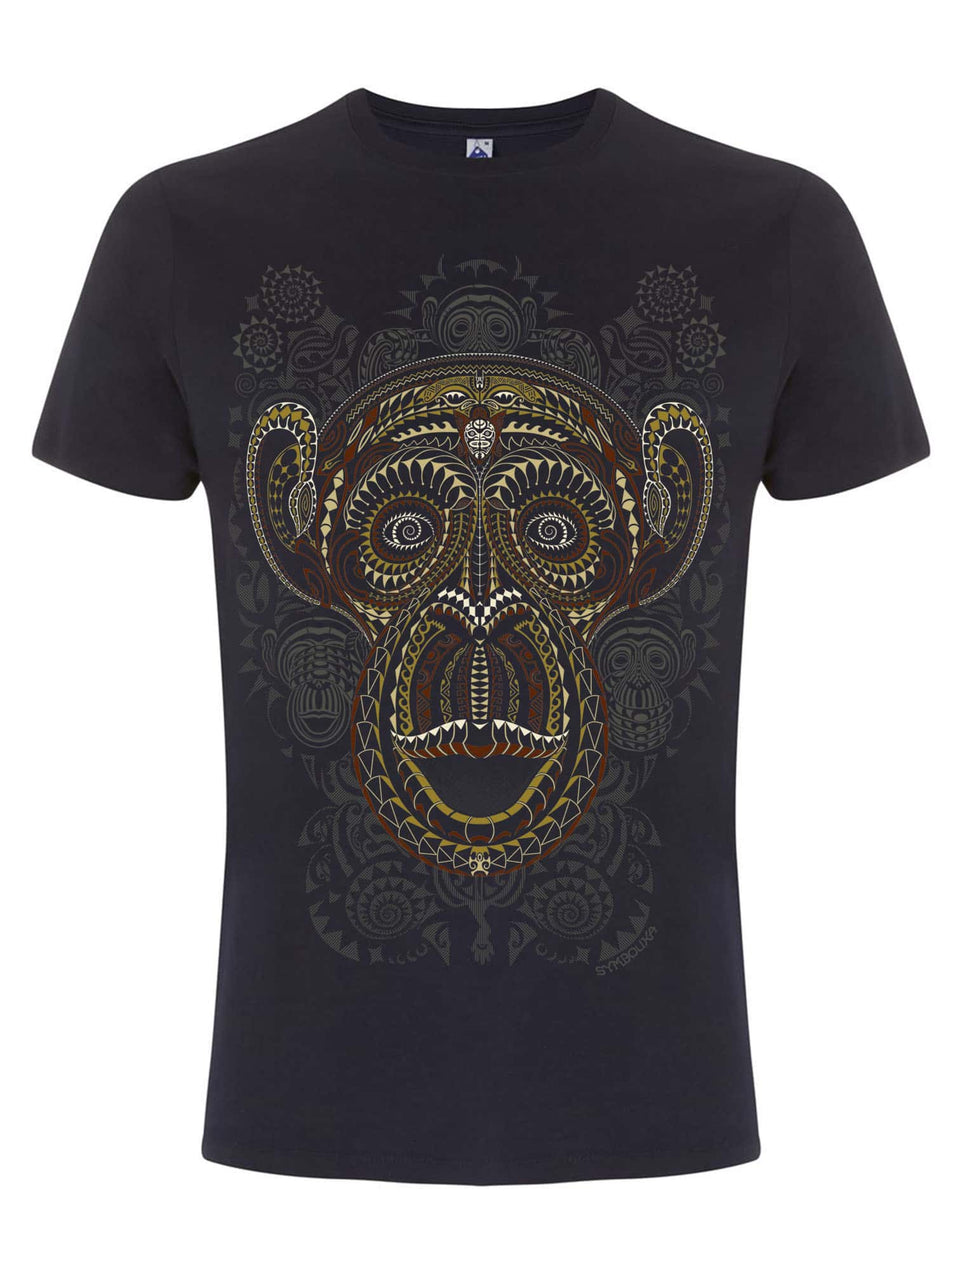 Ta Wise Monkeys  Made To Order Men T-Shirt - Navy Blue